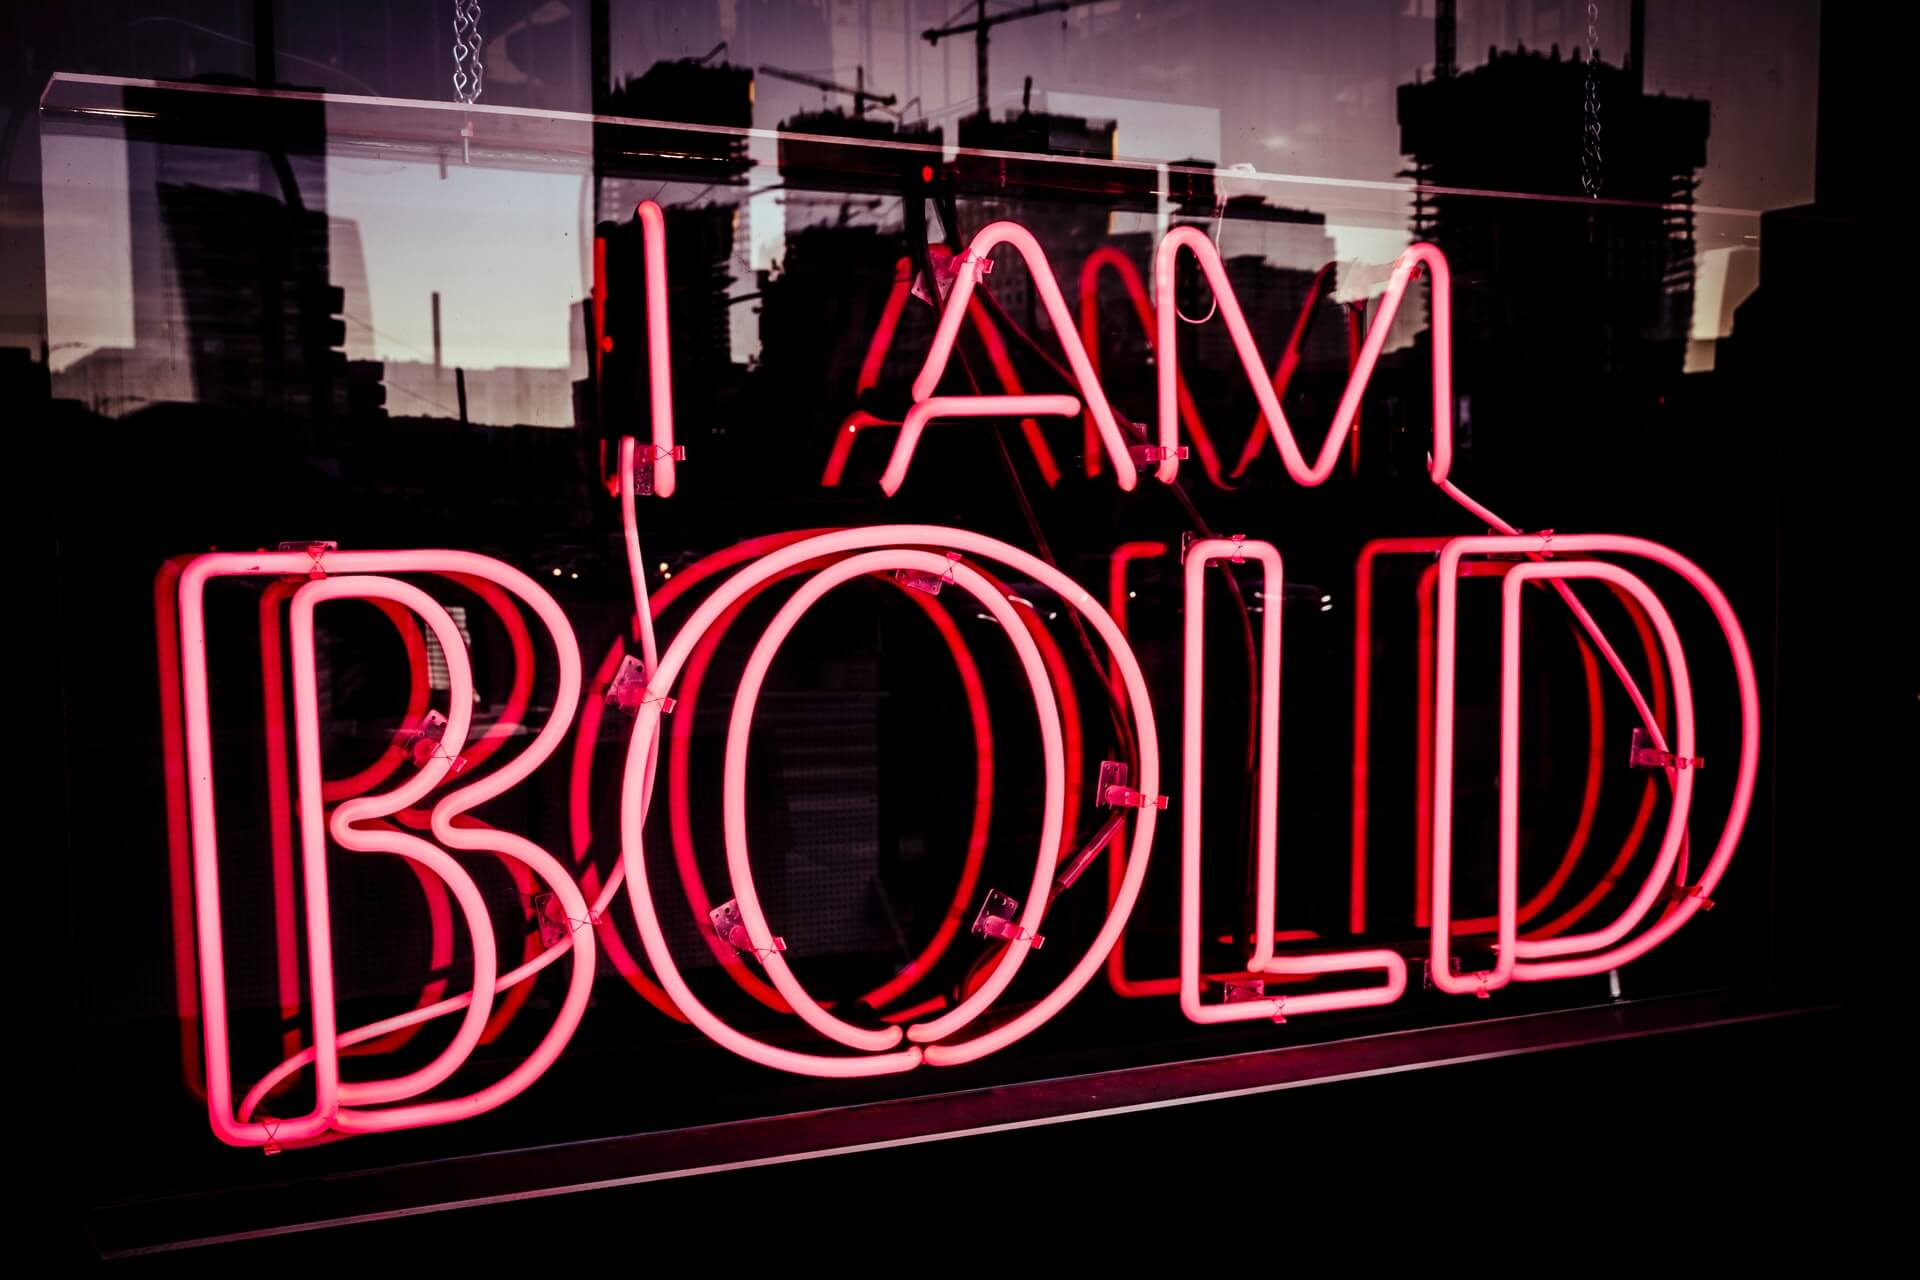 two-powerful-words-neon-sign-i-am-bold